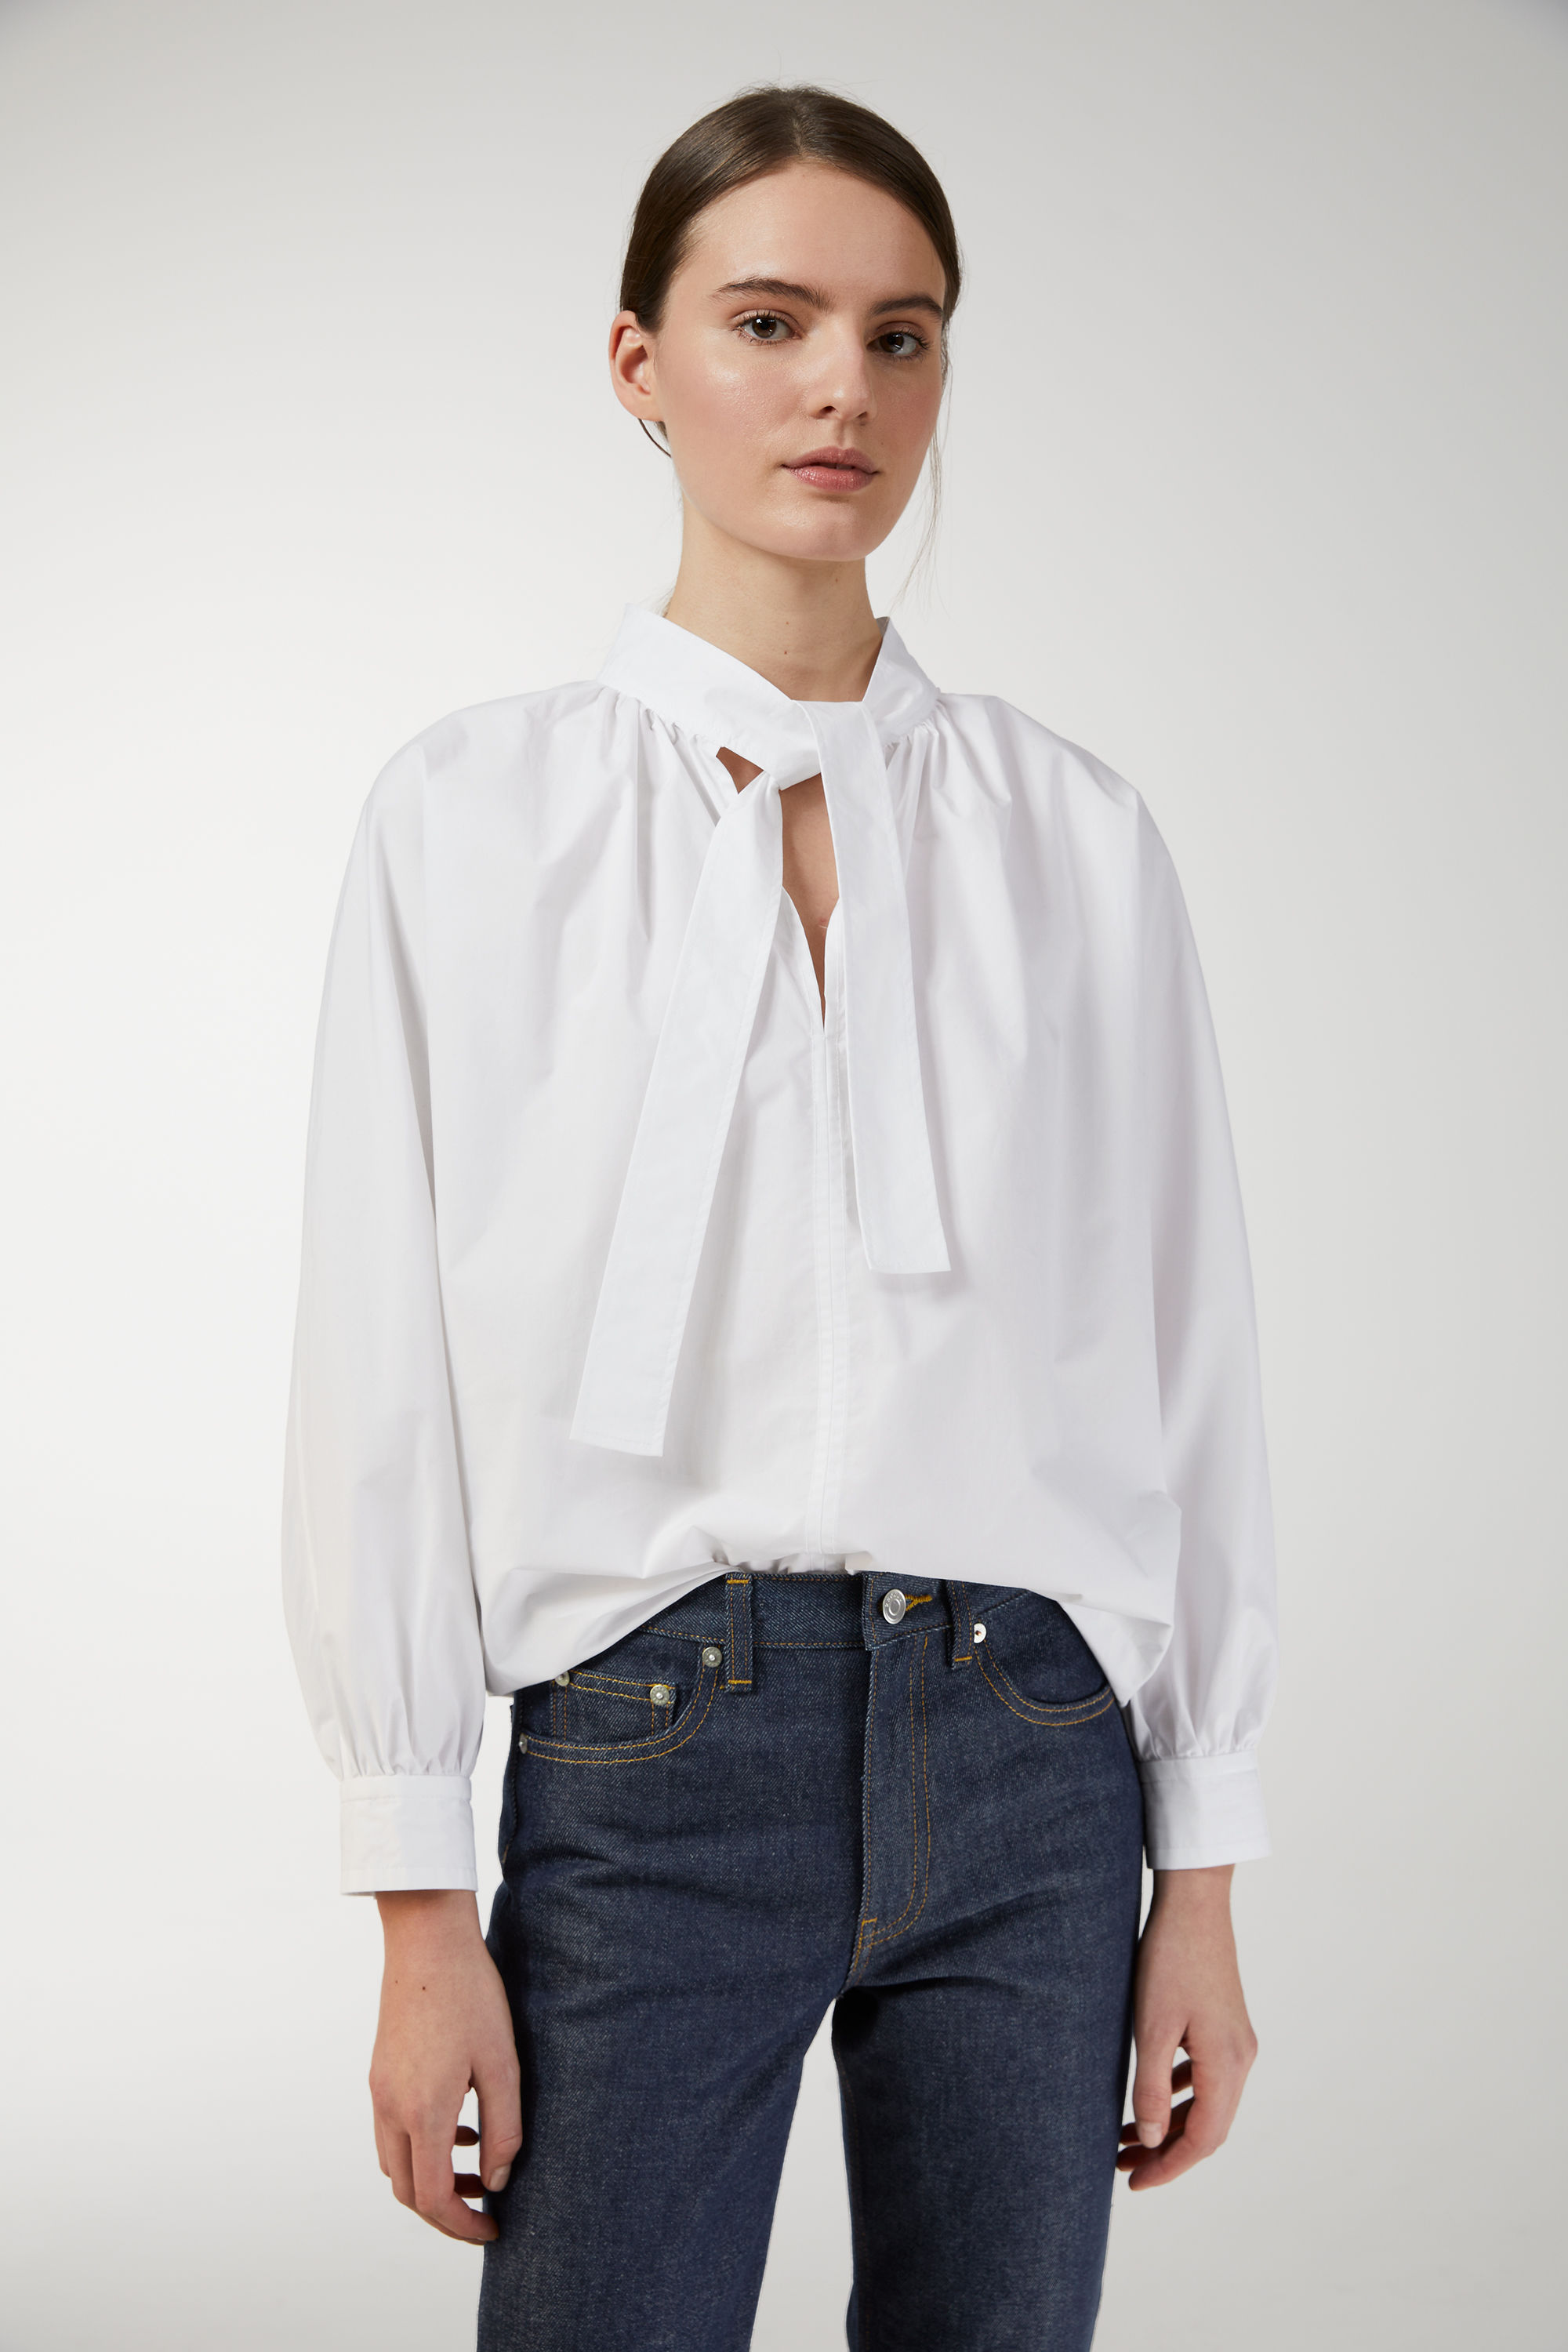 arket poplin tie-neck blouse £30, was £59